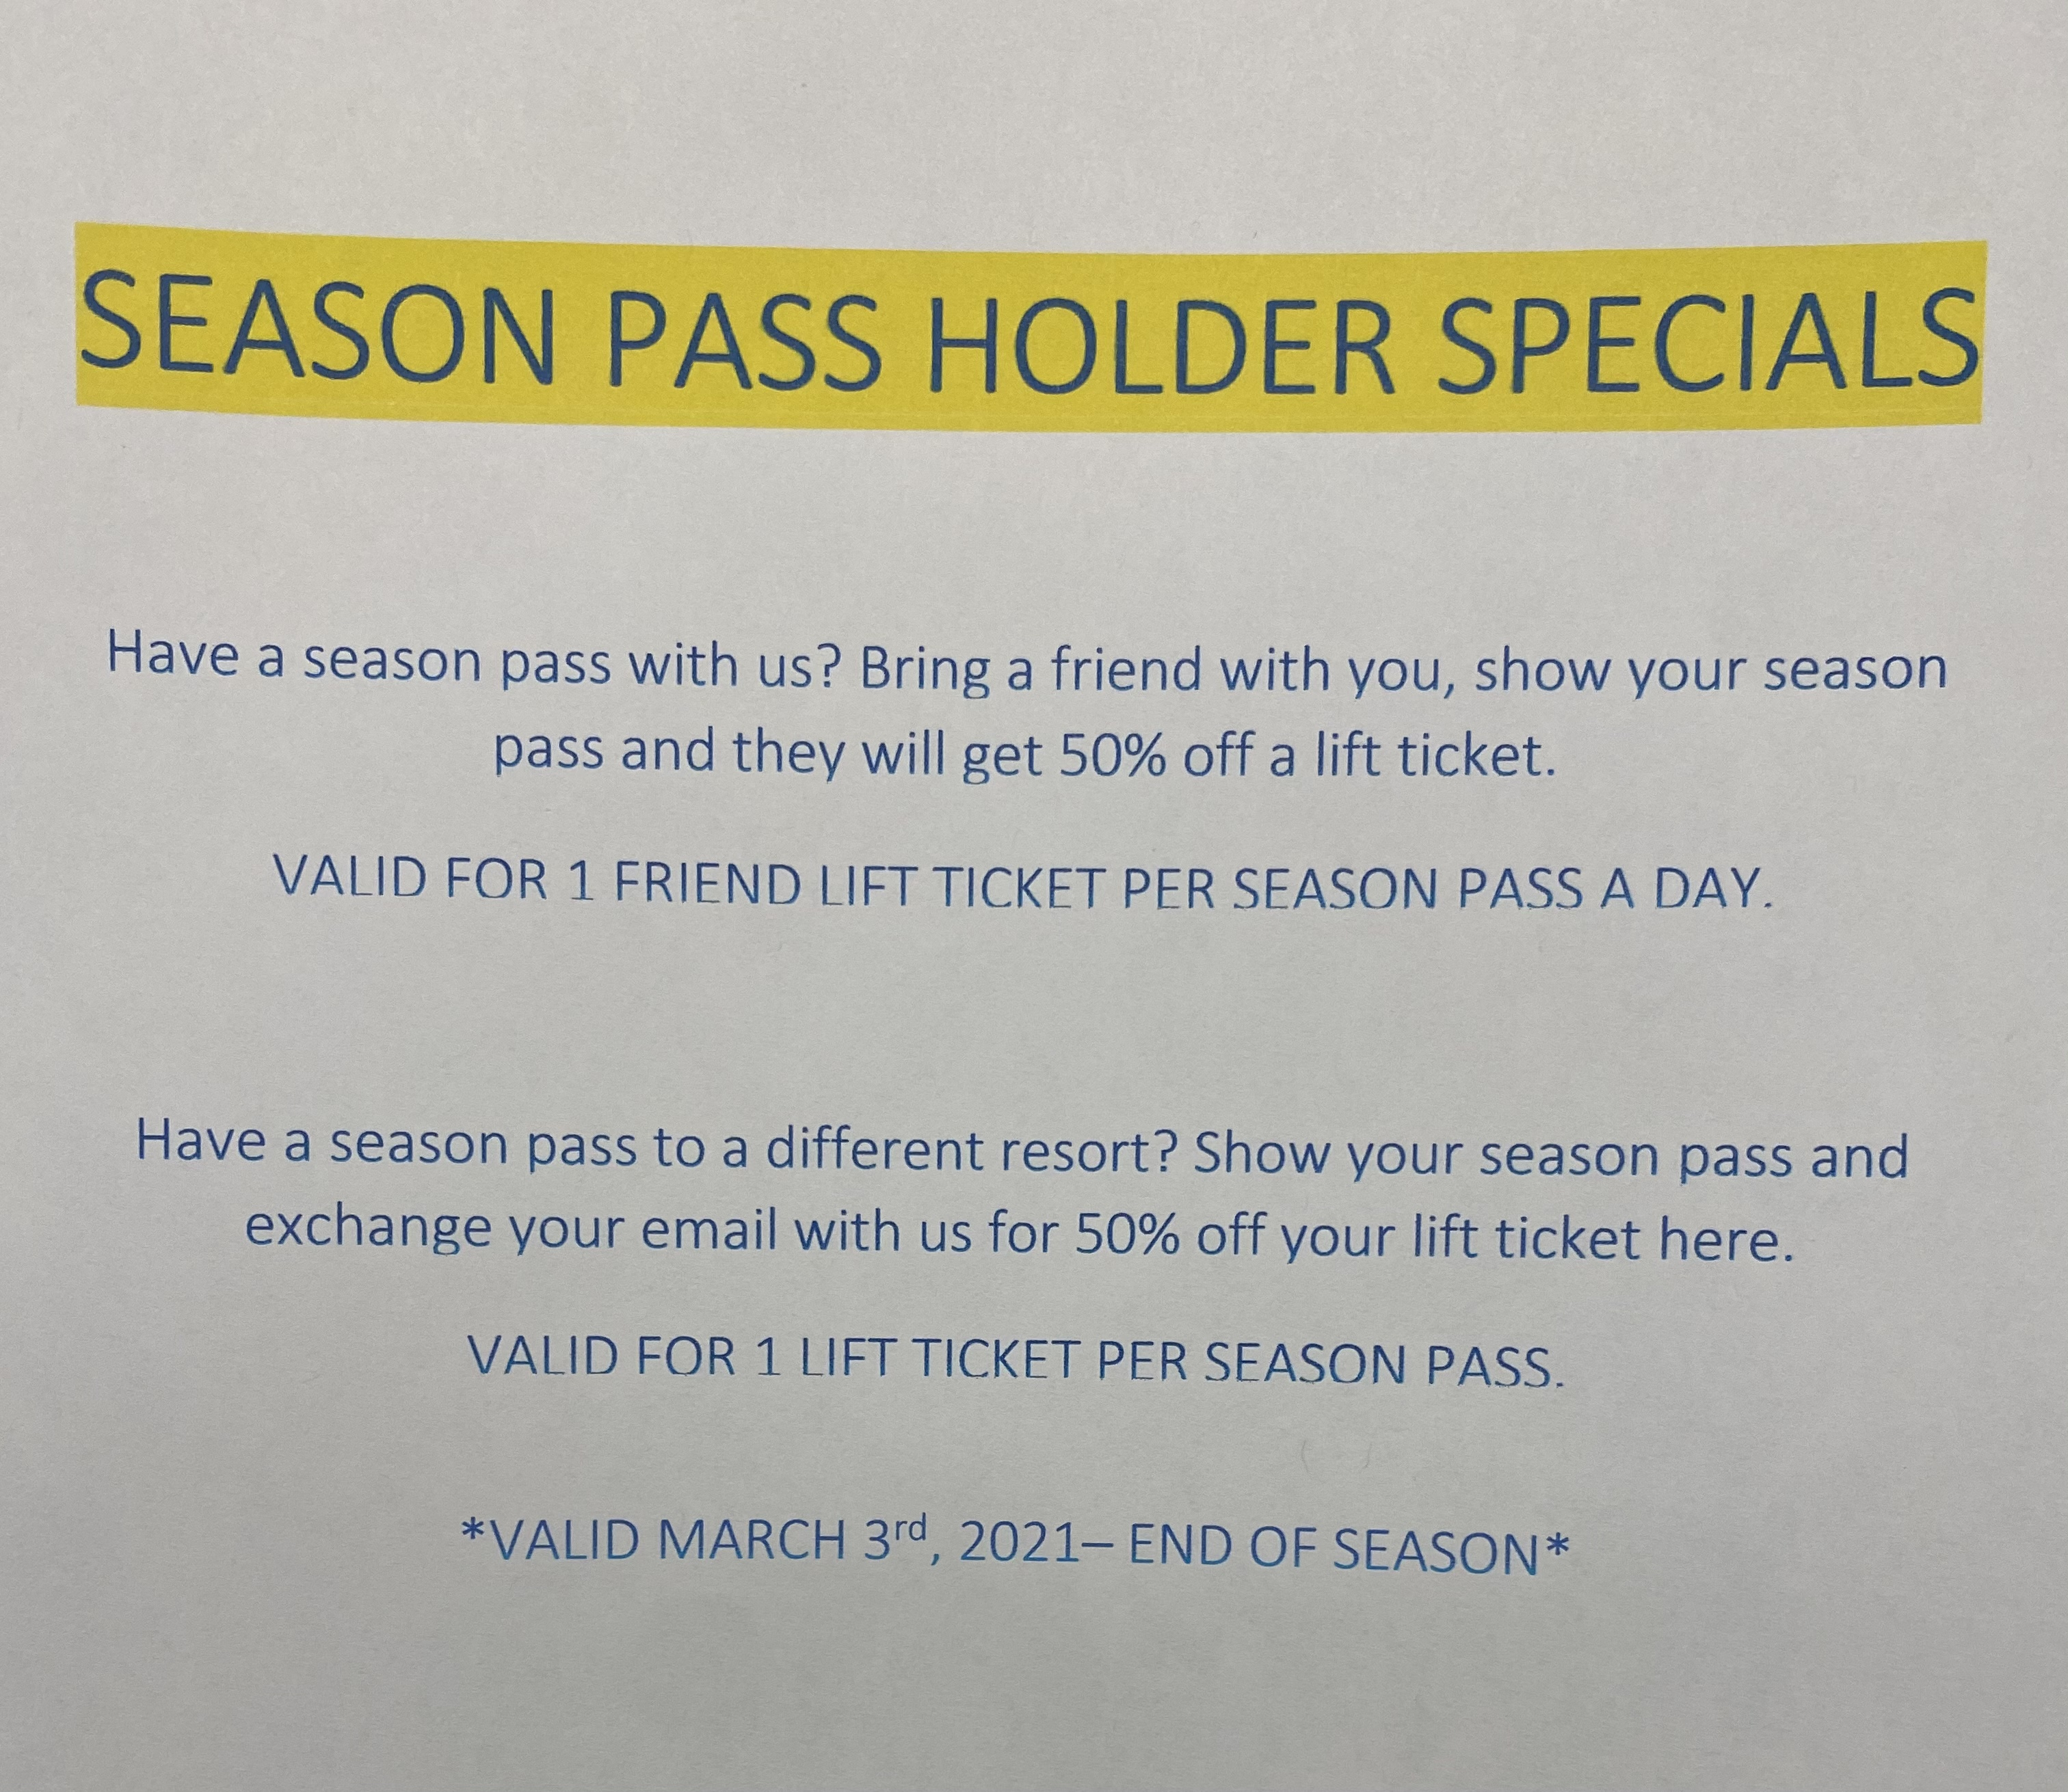 Season Pass Holder Special